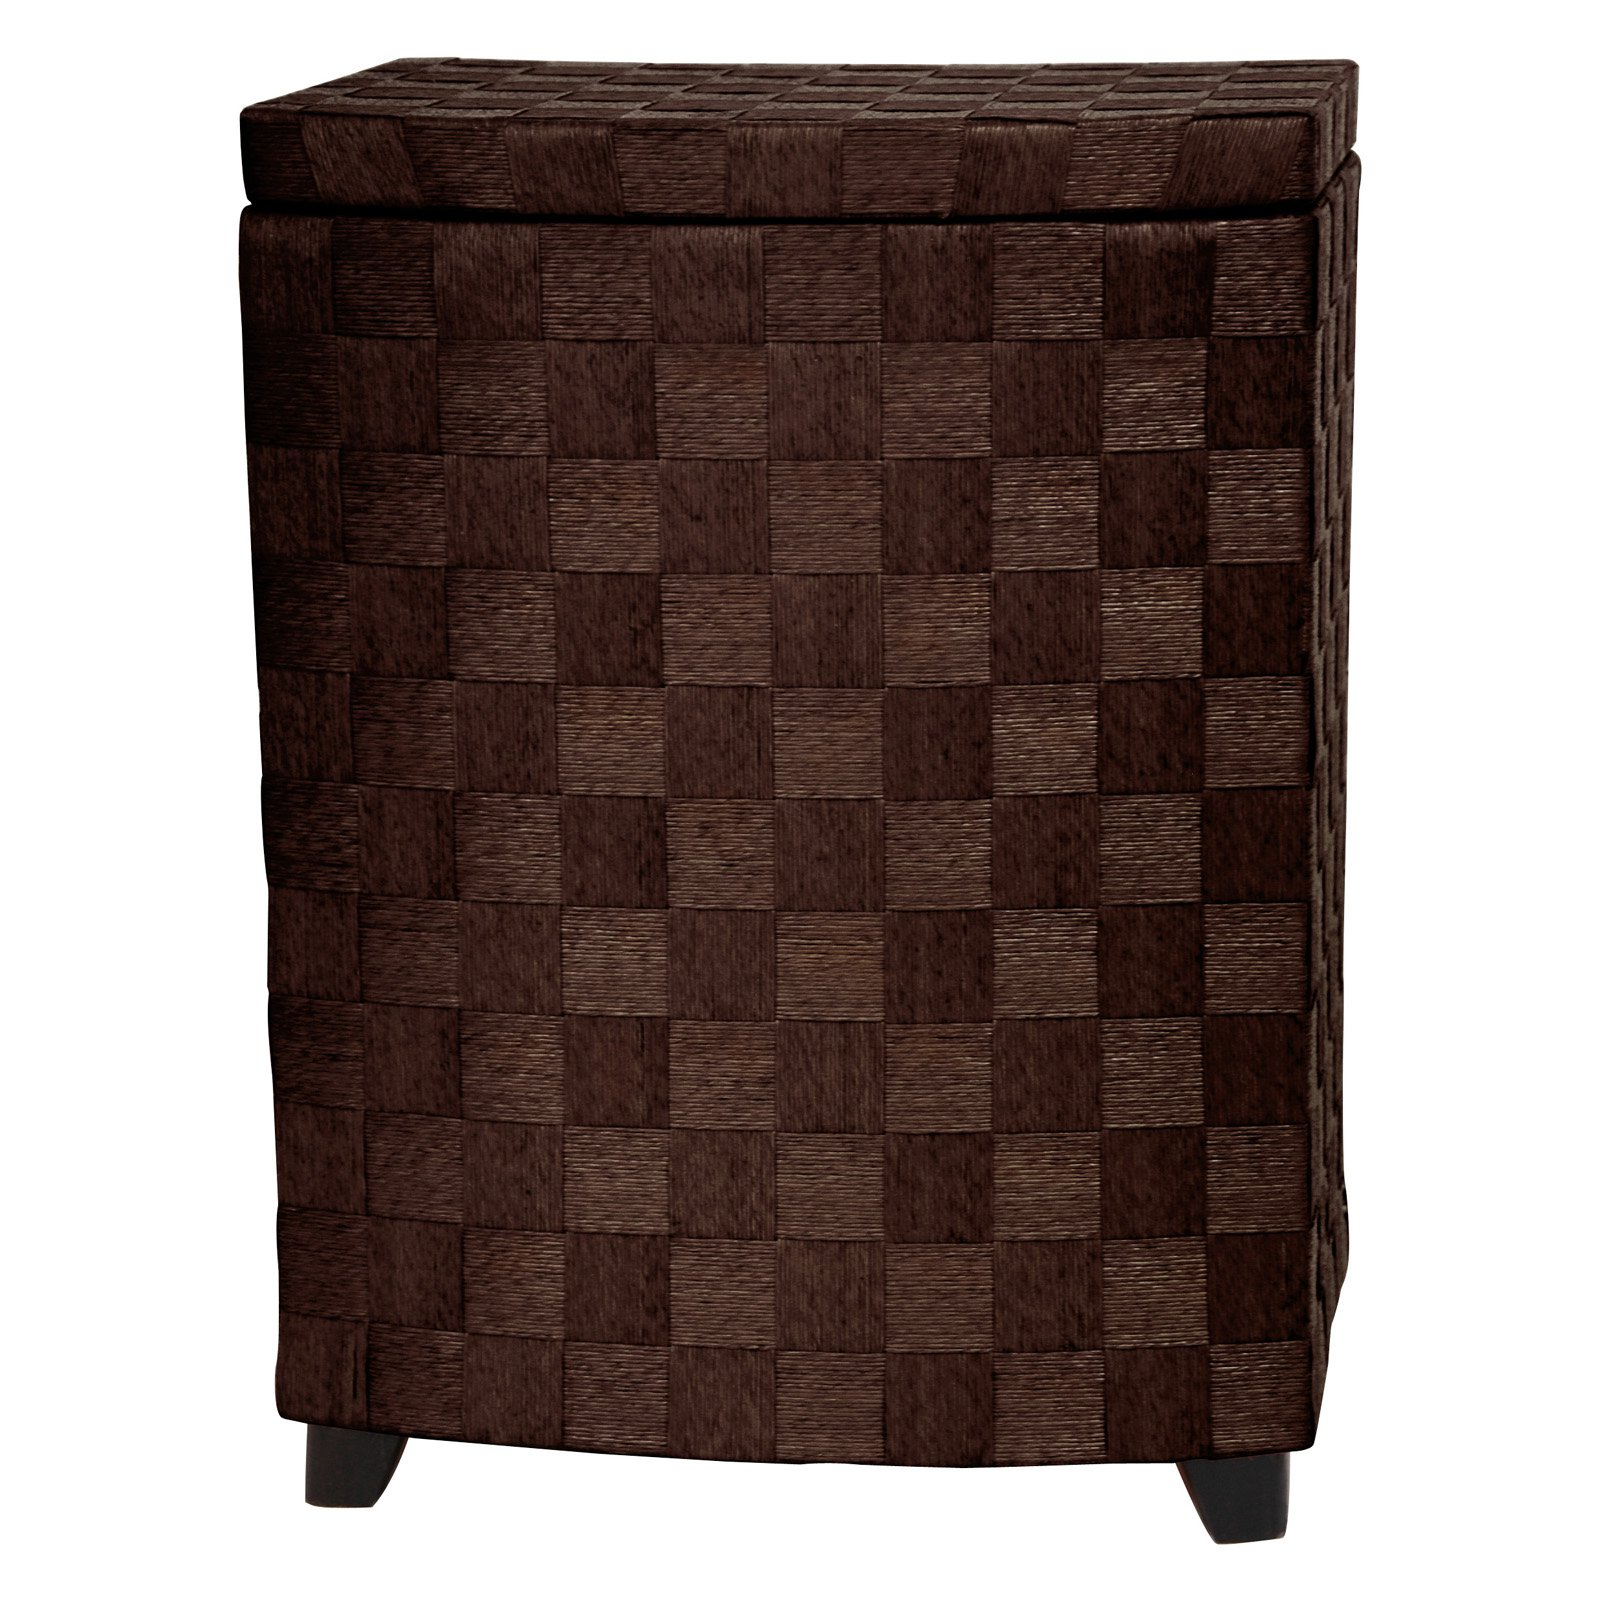 Oriental Furniture Natural Fiber Rectangular Laundry Hamper